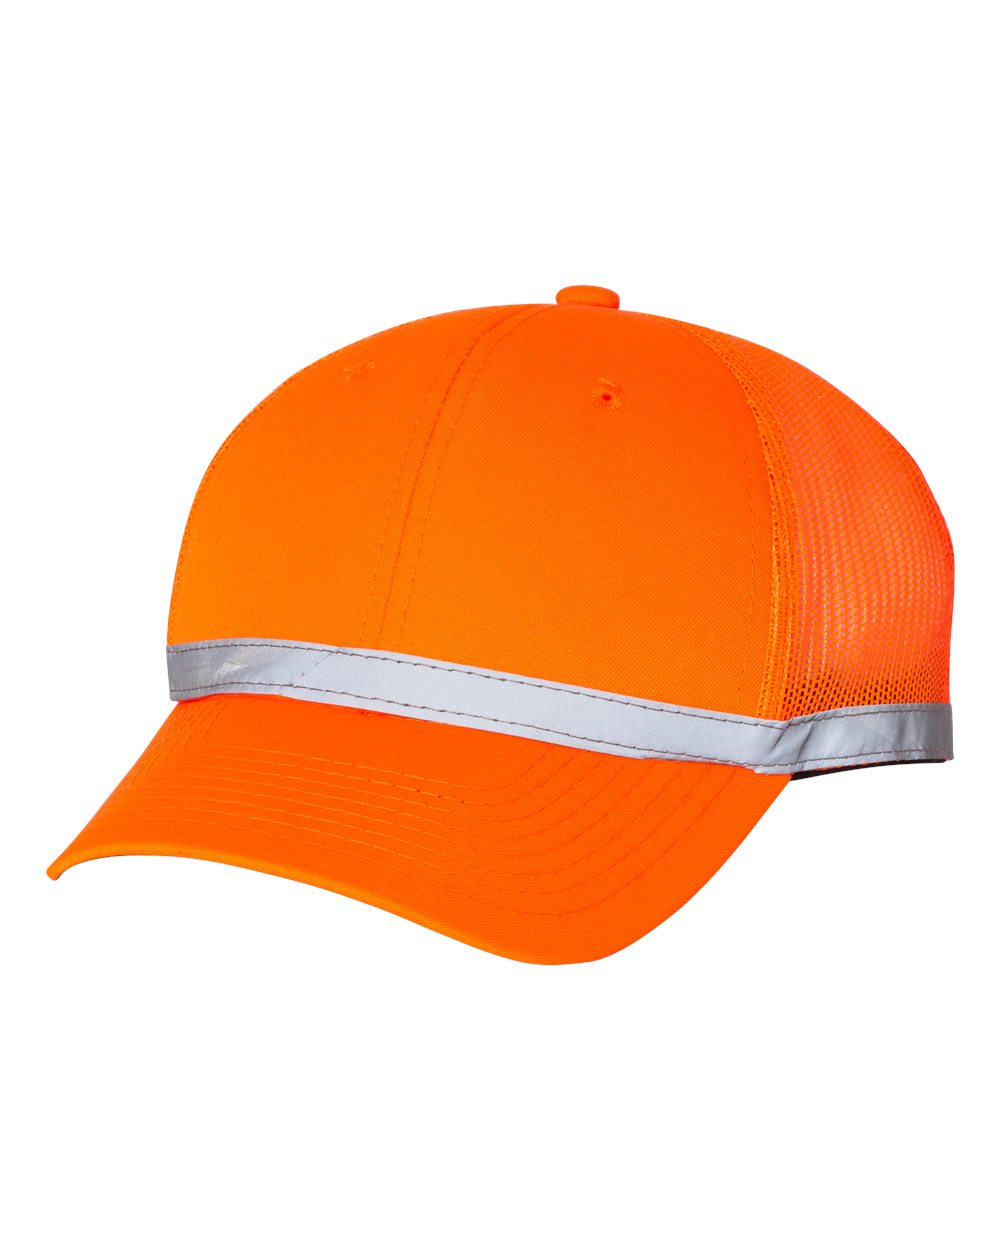 Outdoor Cap ANSI100M - ANSI Certified Mesh Back Cap